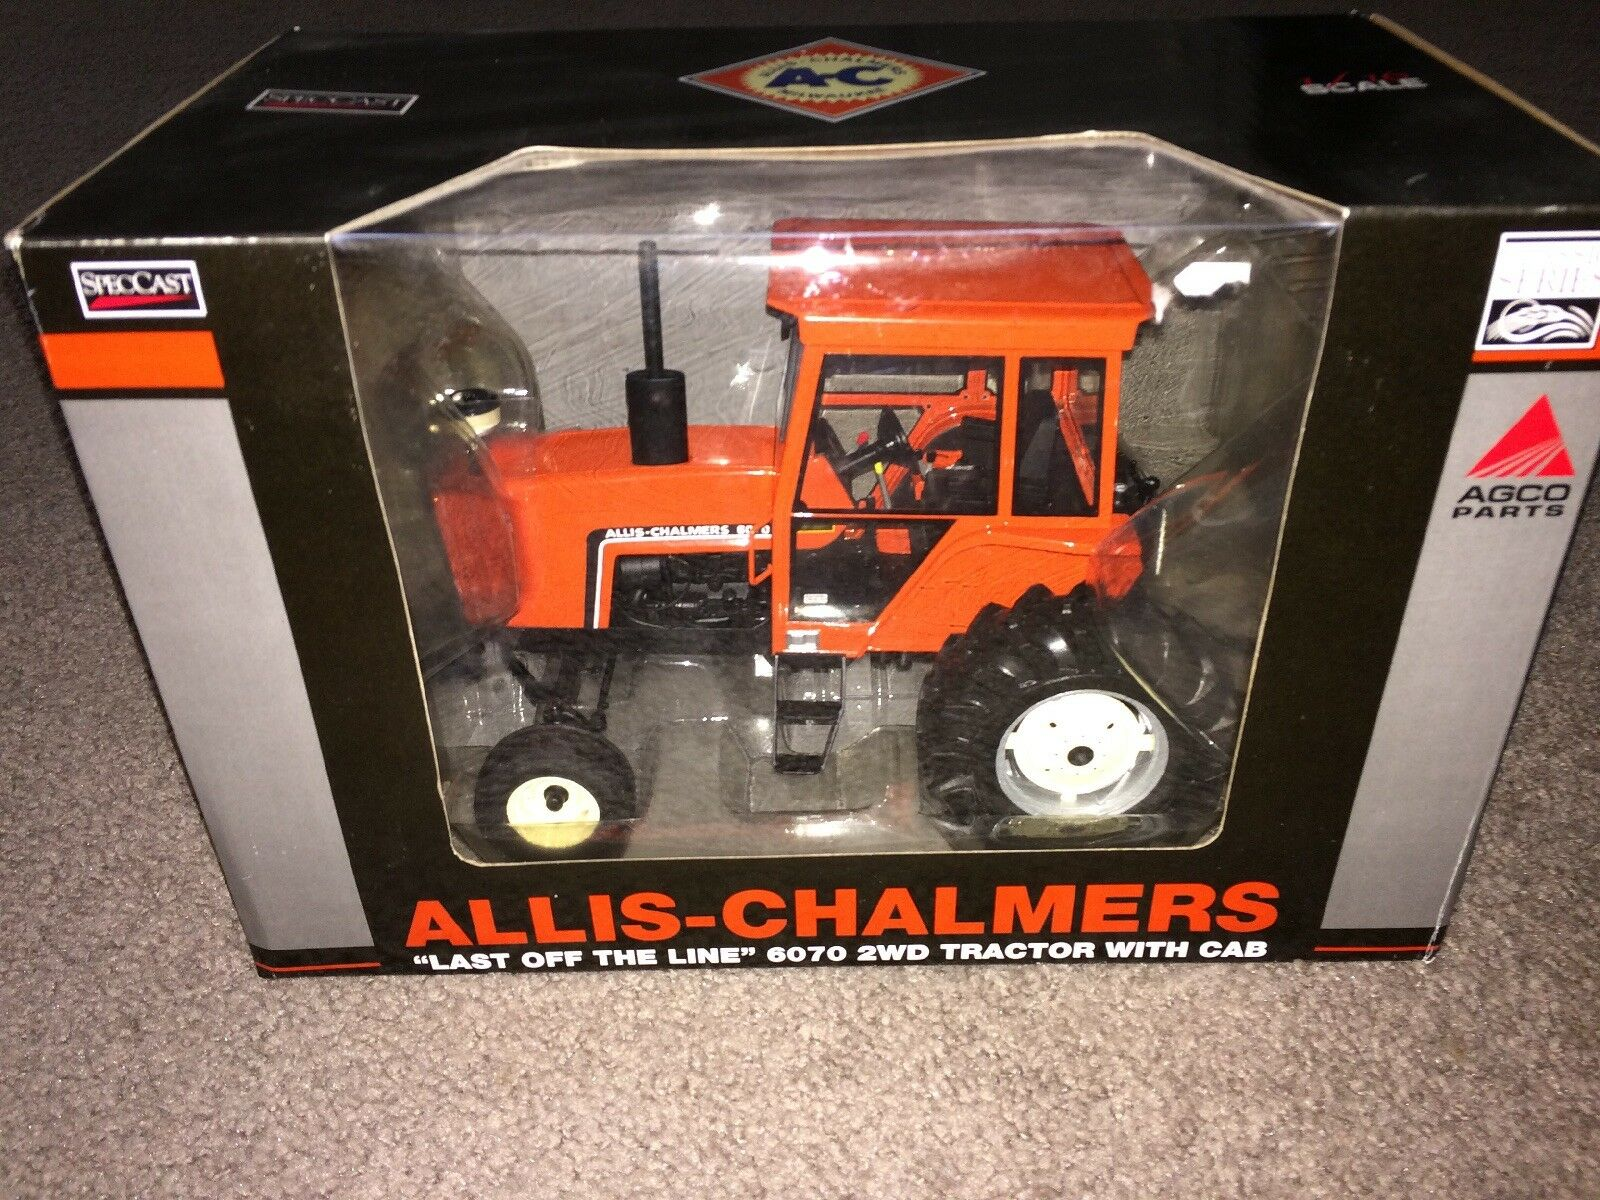 1 16 Allis-Chalmers Highly Detailed 6070 2WD Tractor Cab New in Box by Spec Cast